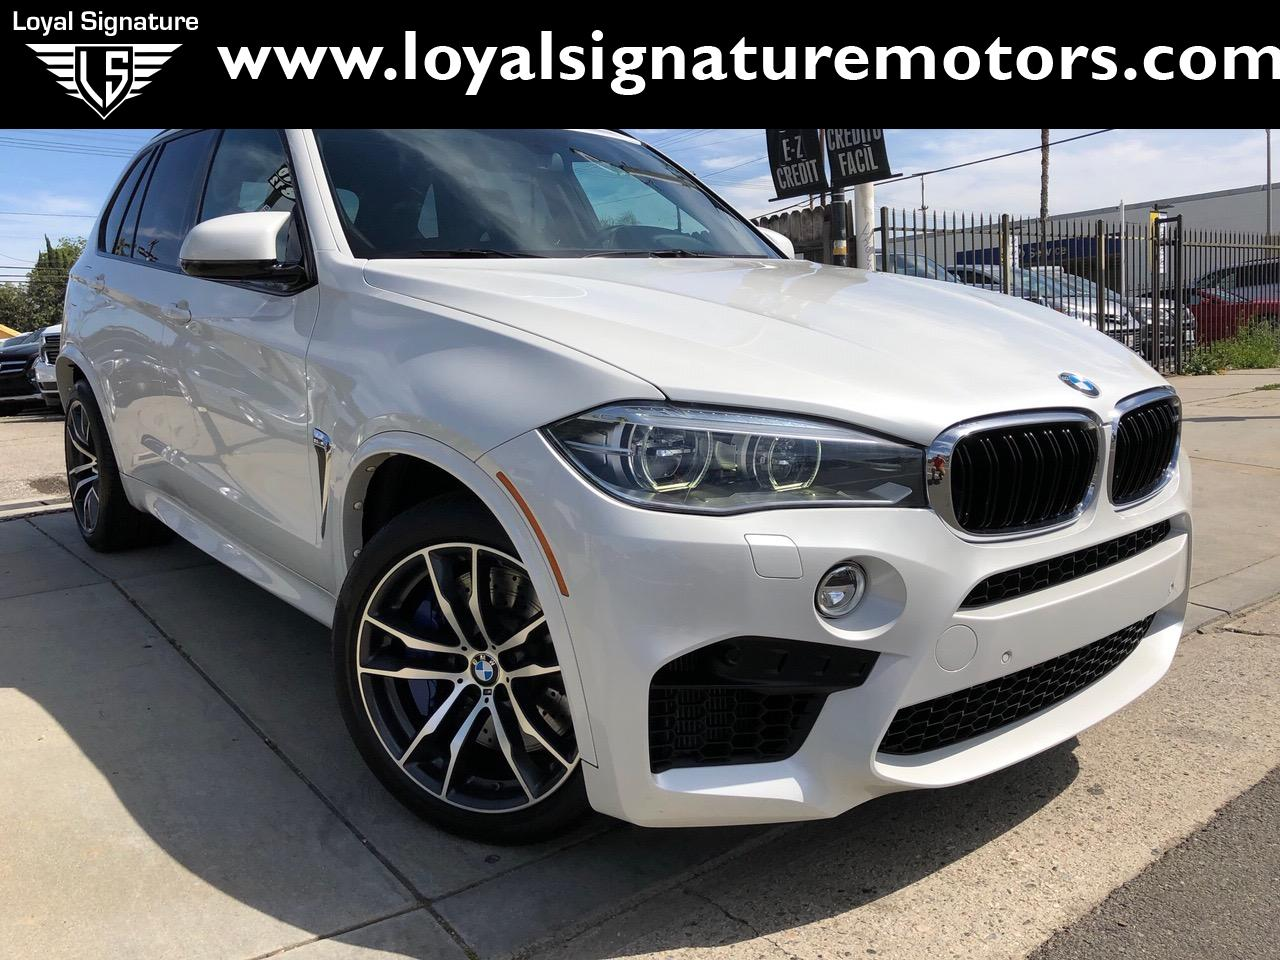 Used 2015 Bmw X5 M For Sale 46 995 Loyal Signature Motors Inc